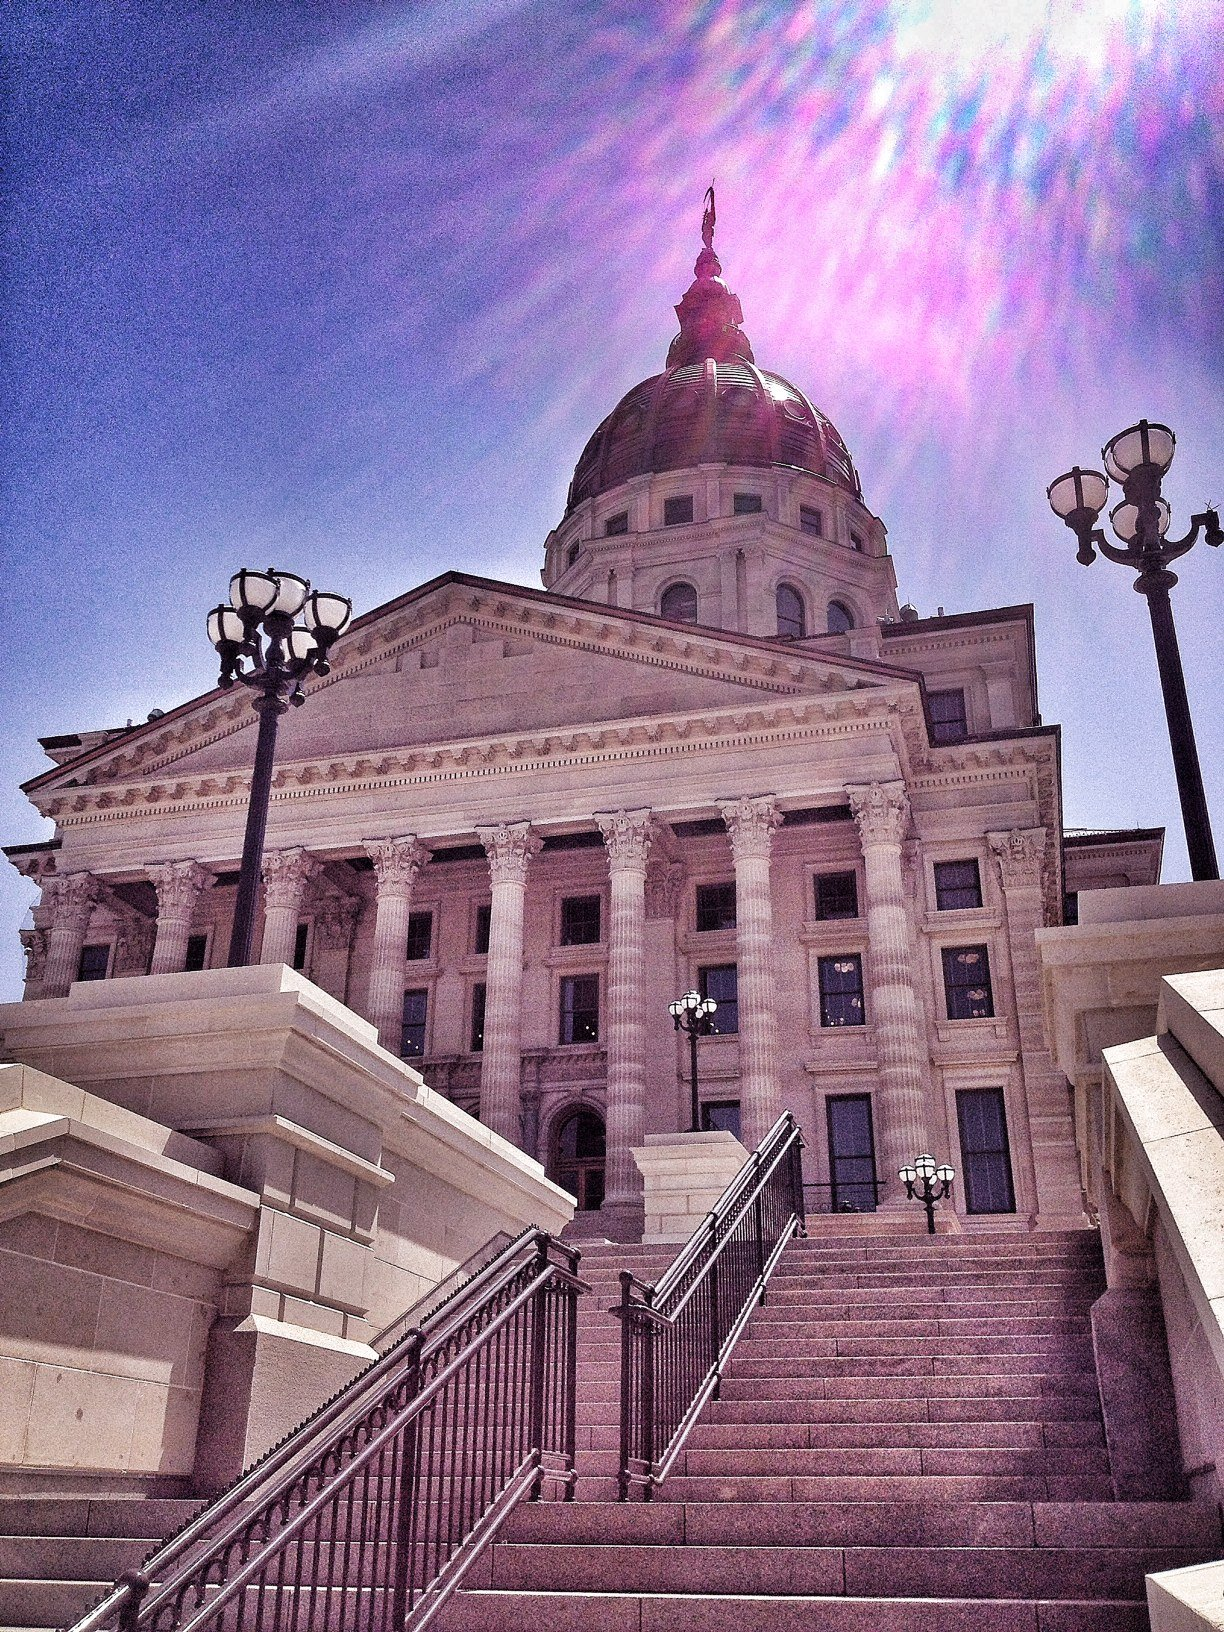 Sunlight shines down on the shiny, new copper dome at the Kansas Statehouse. (Photo by J. Schafer)